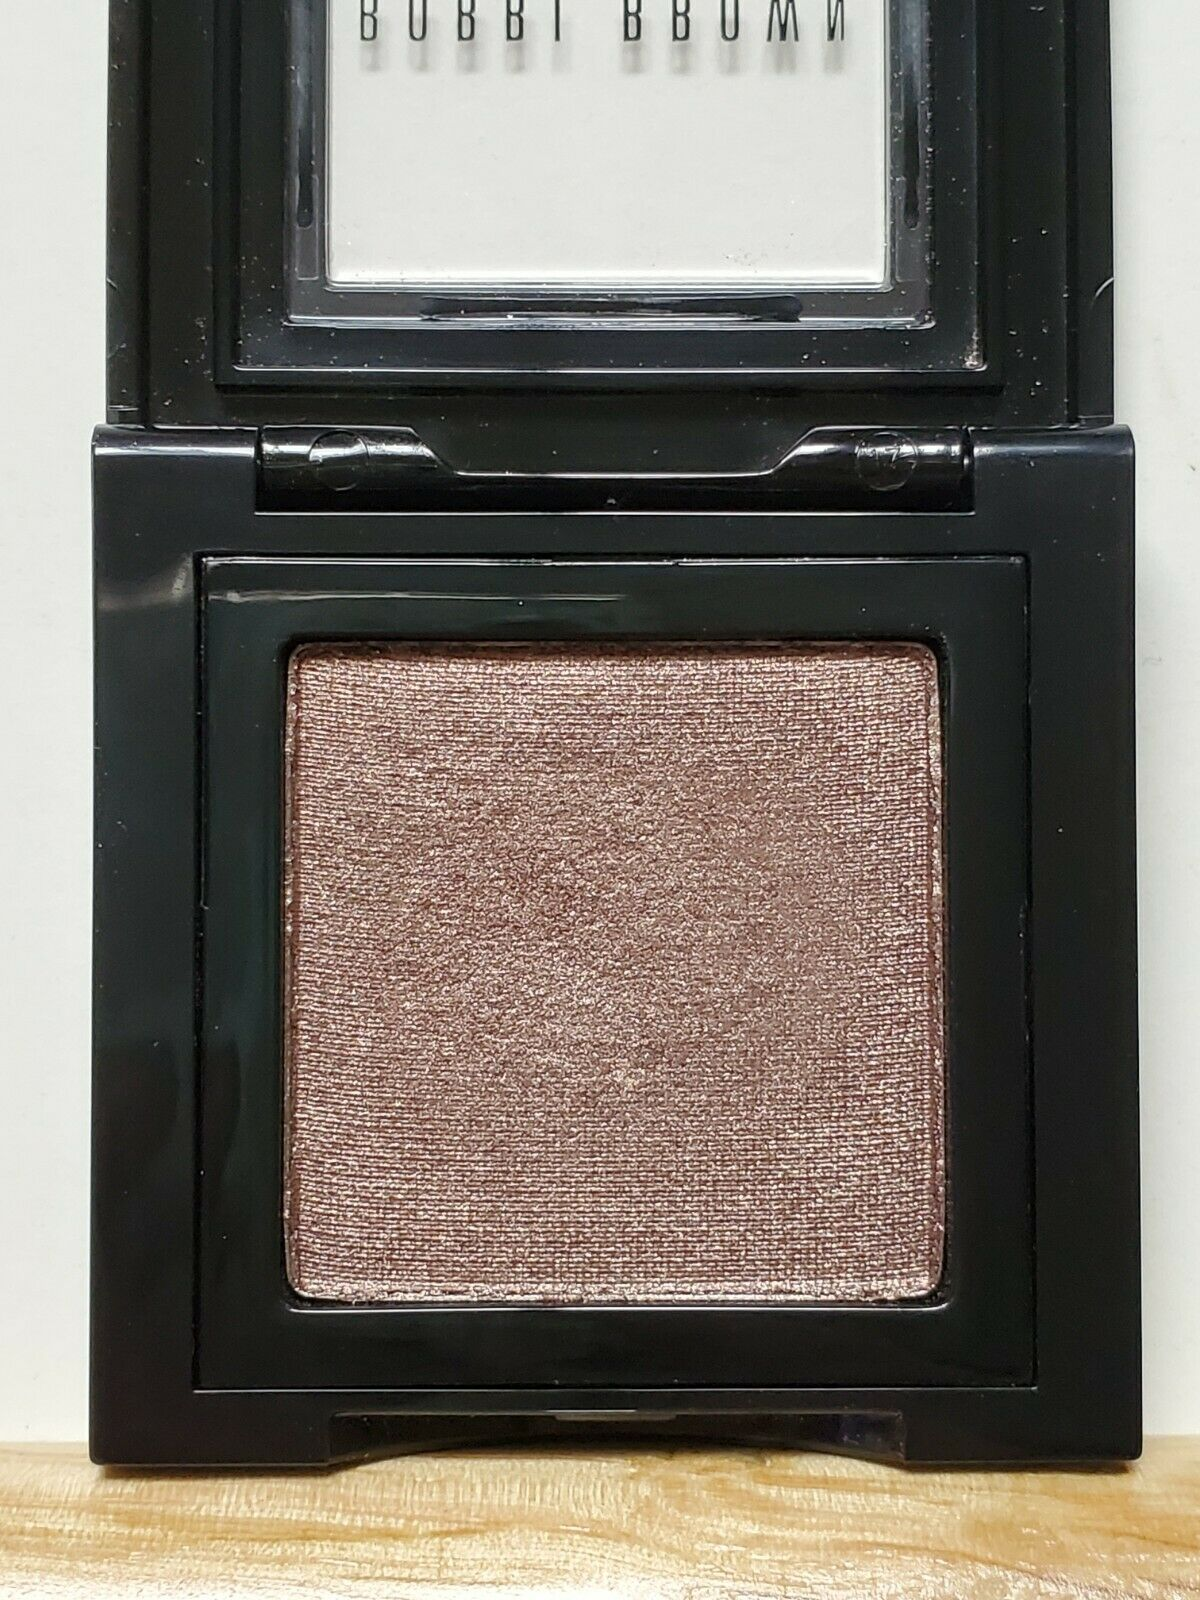 Bobbi Brown VELVET PLUM 3 Metallic Eye Shadow 0.10 Oz. SEE DETAILS  - $9.95